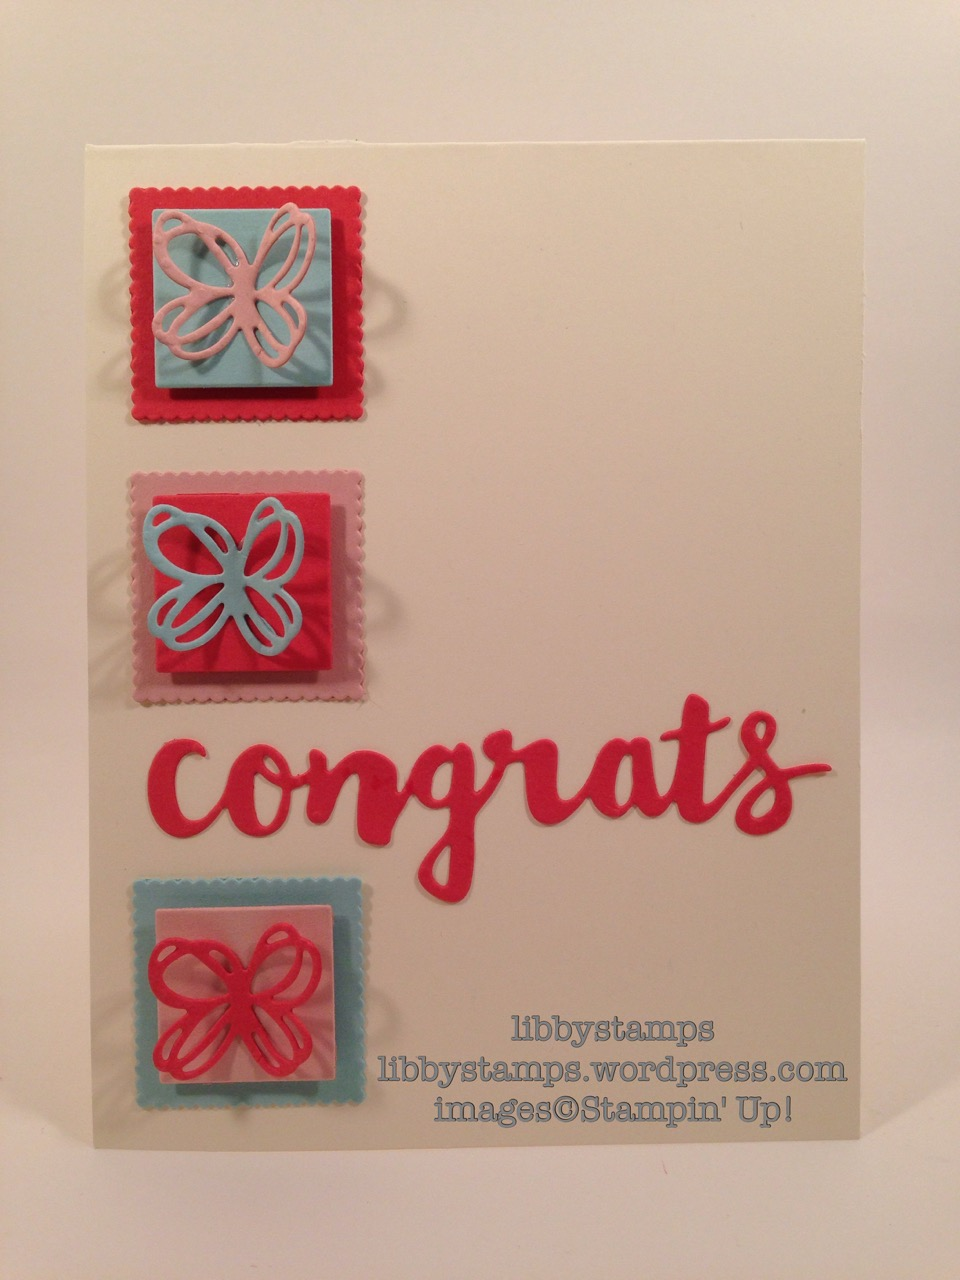 libbystamps, stampin up, Layering Squares Framelits, Sunshine Wishes Thinlits, CCMC412